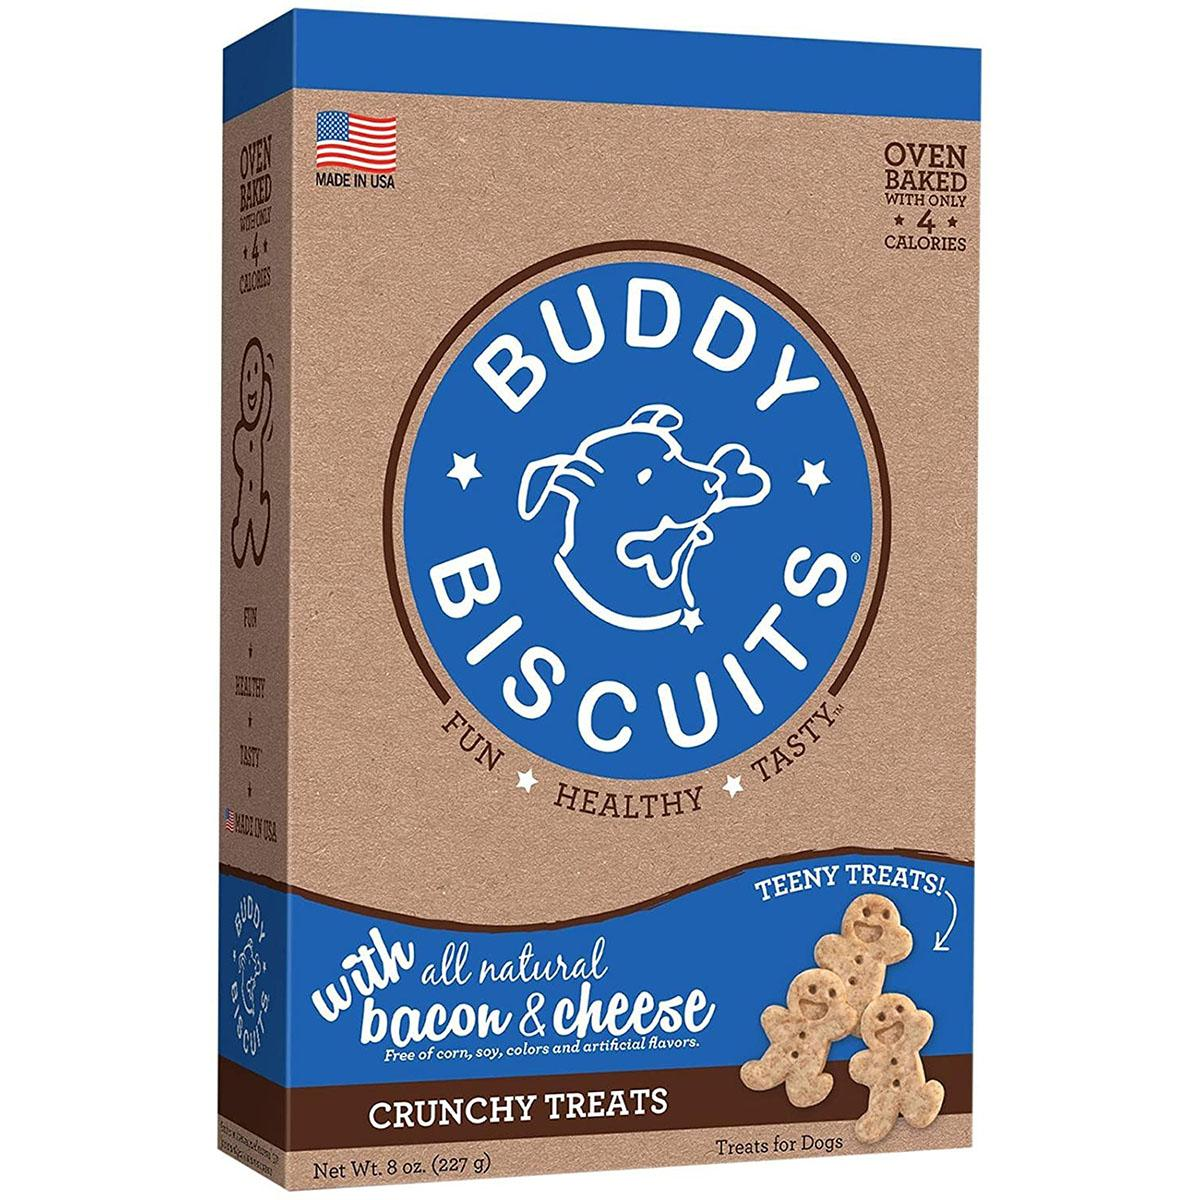 Buddy Biscuits Itty Bitty Dog Treats - Bacon & Cheese